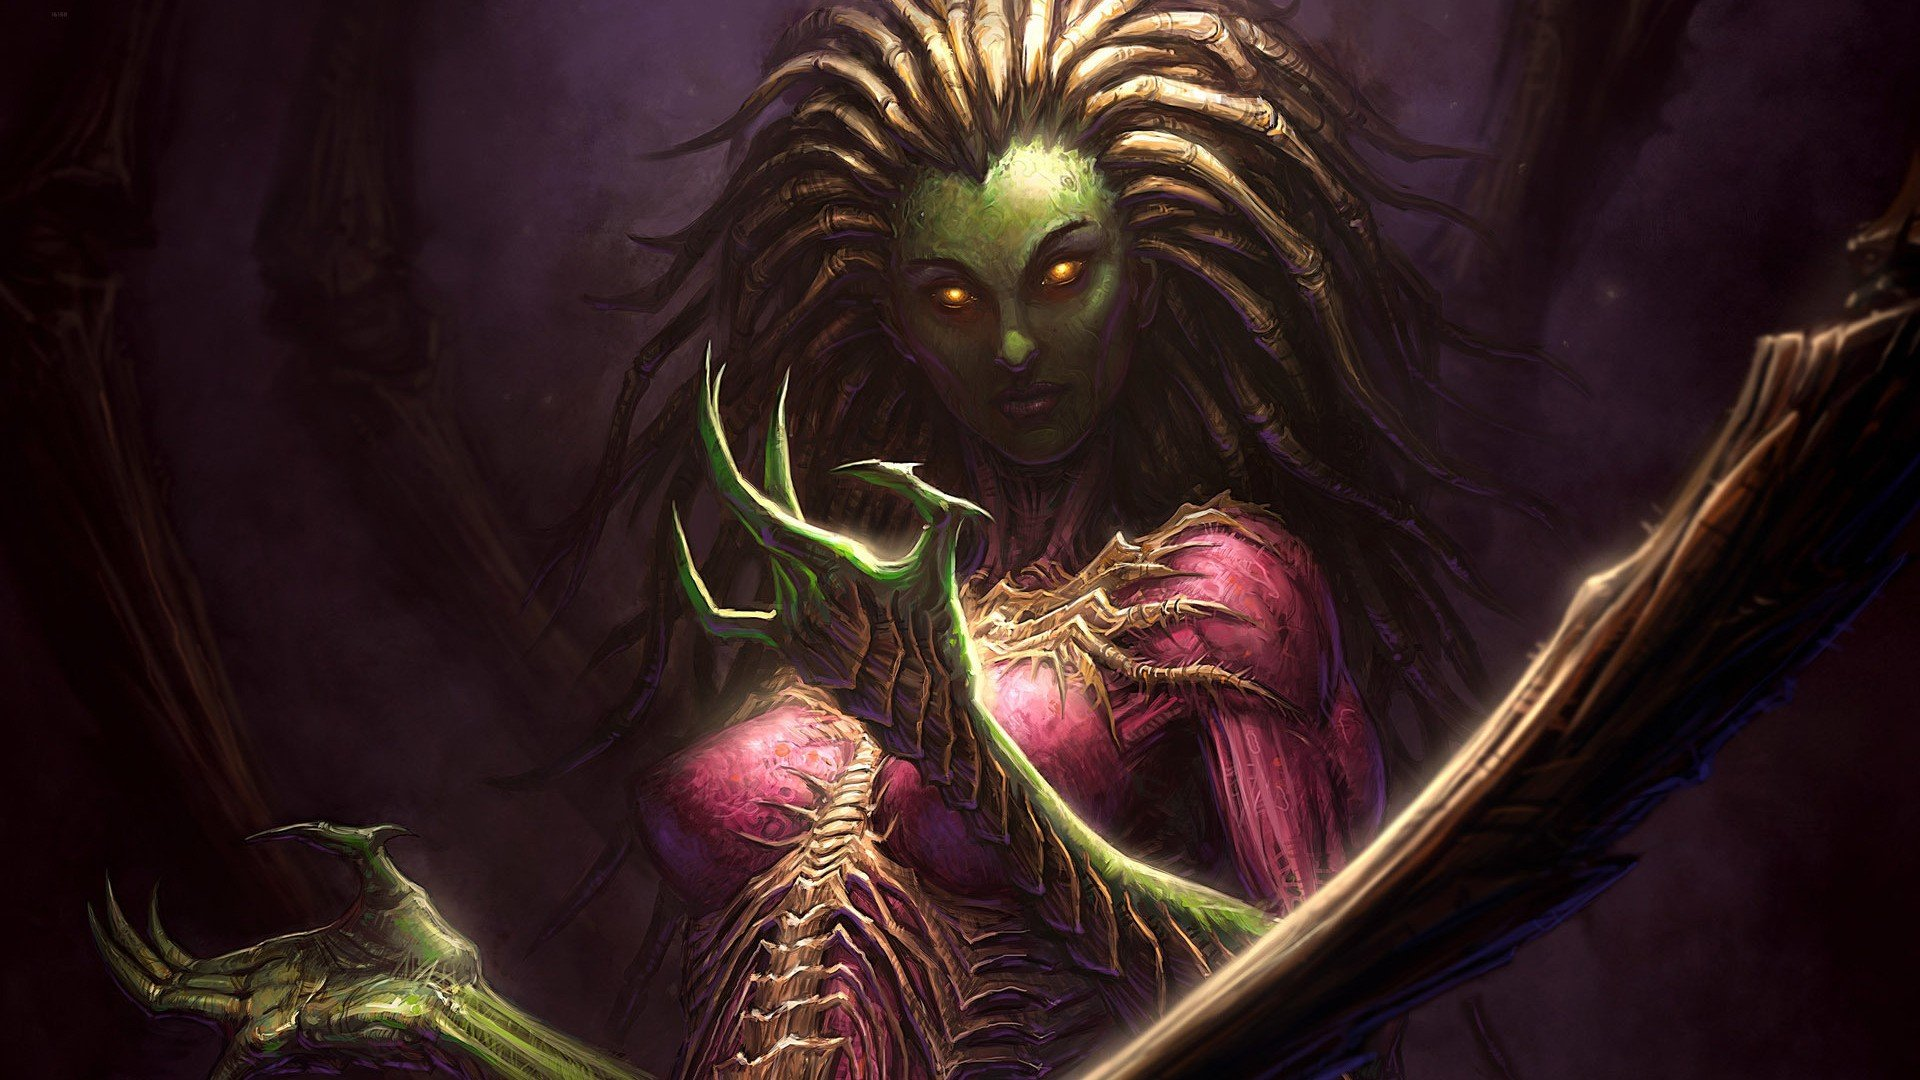 Women Video Games Starcraft Swarm Zerg Fantasy Art Artwork